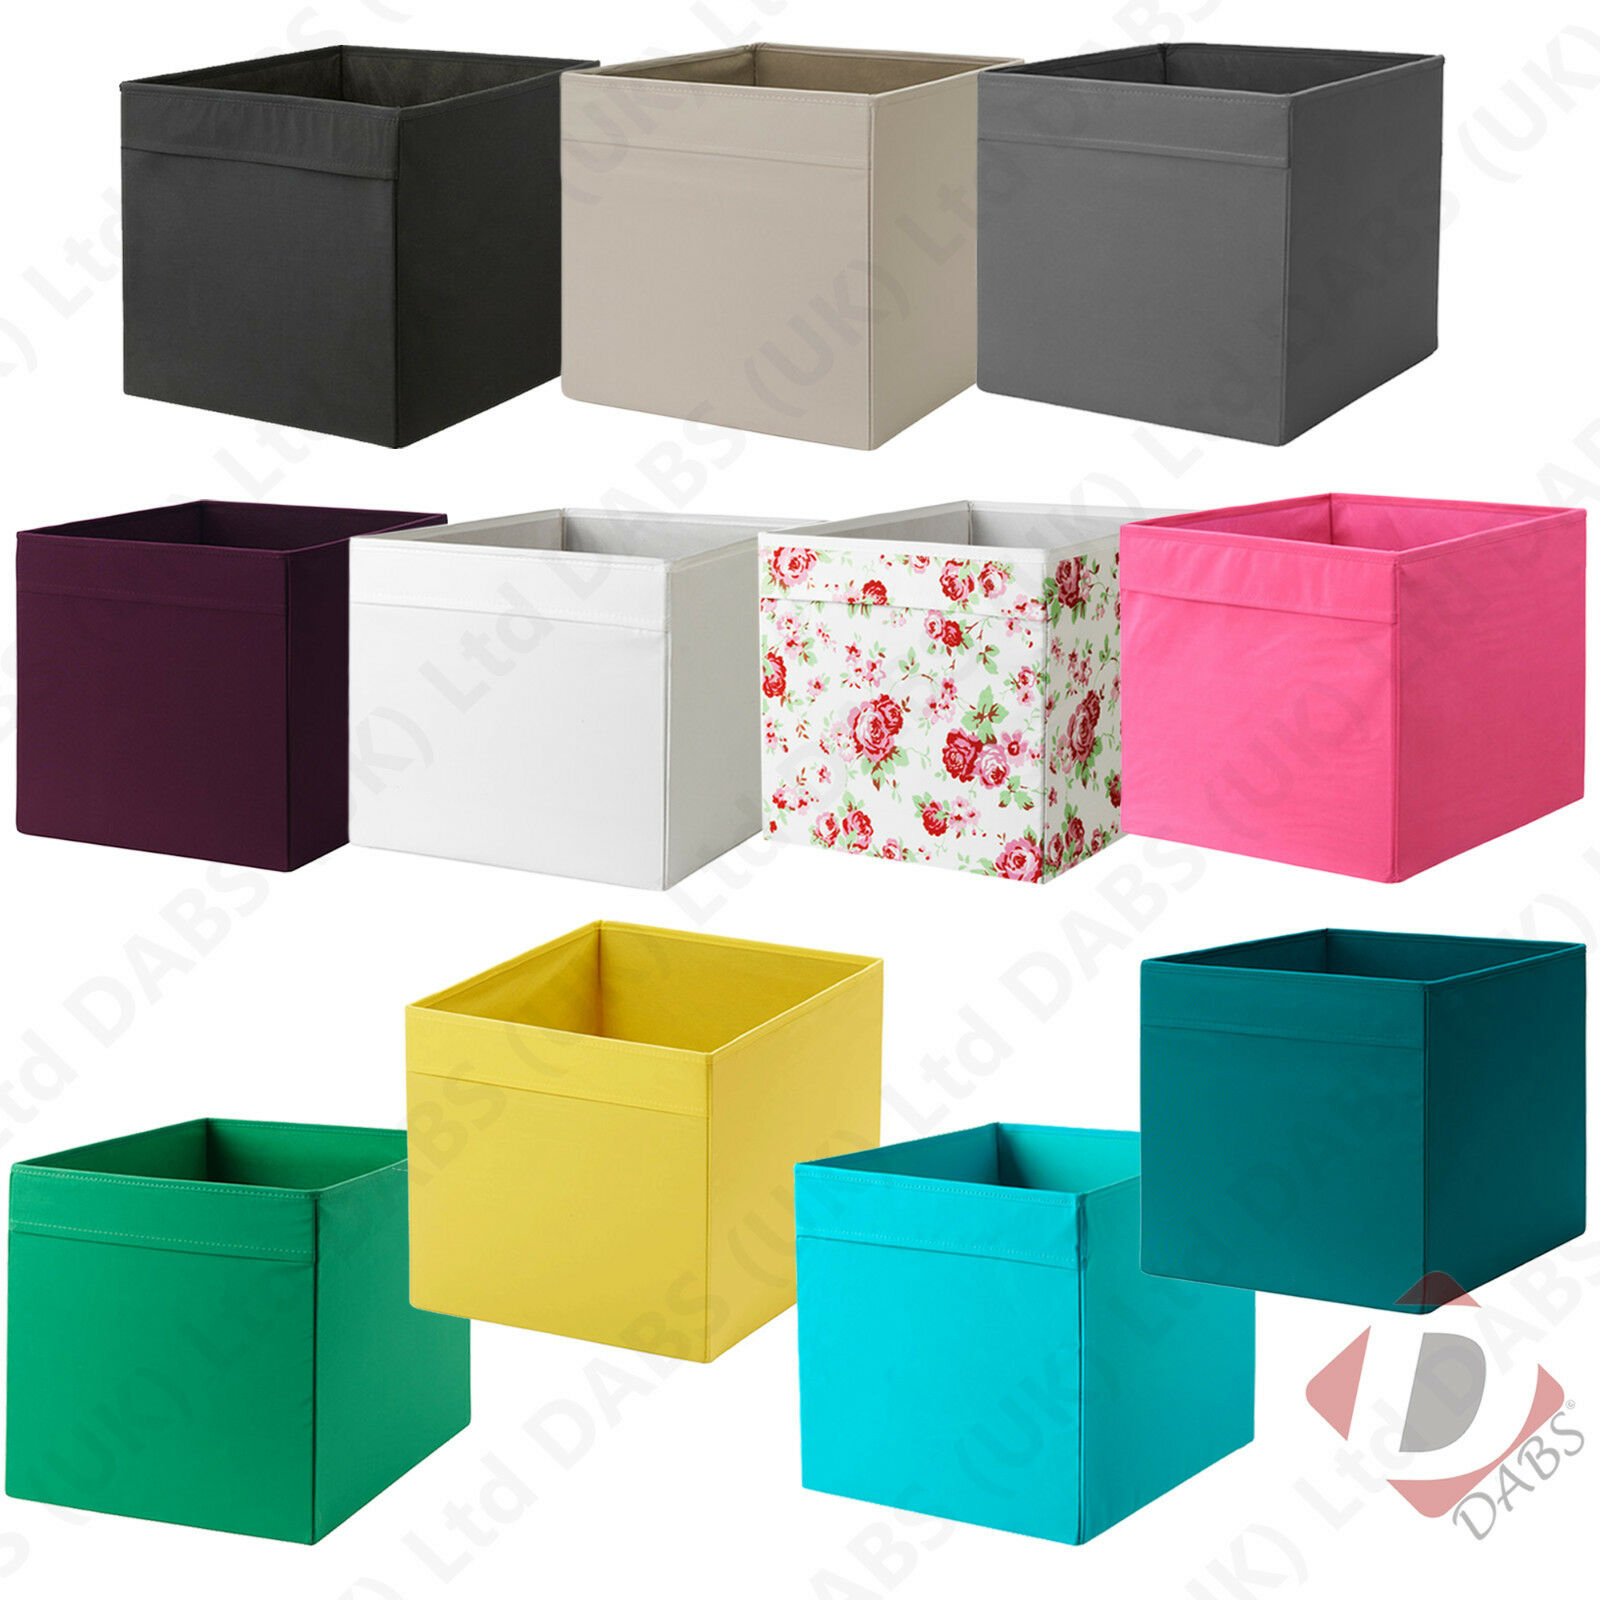 ikea drona fabric storage boxes fit expedit book shelf kallax shelving toy box eur 3 90. Black Bedroom Furniture Sets. Home Design Ideas